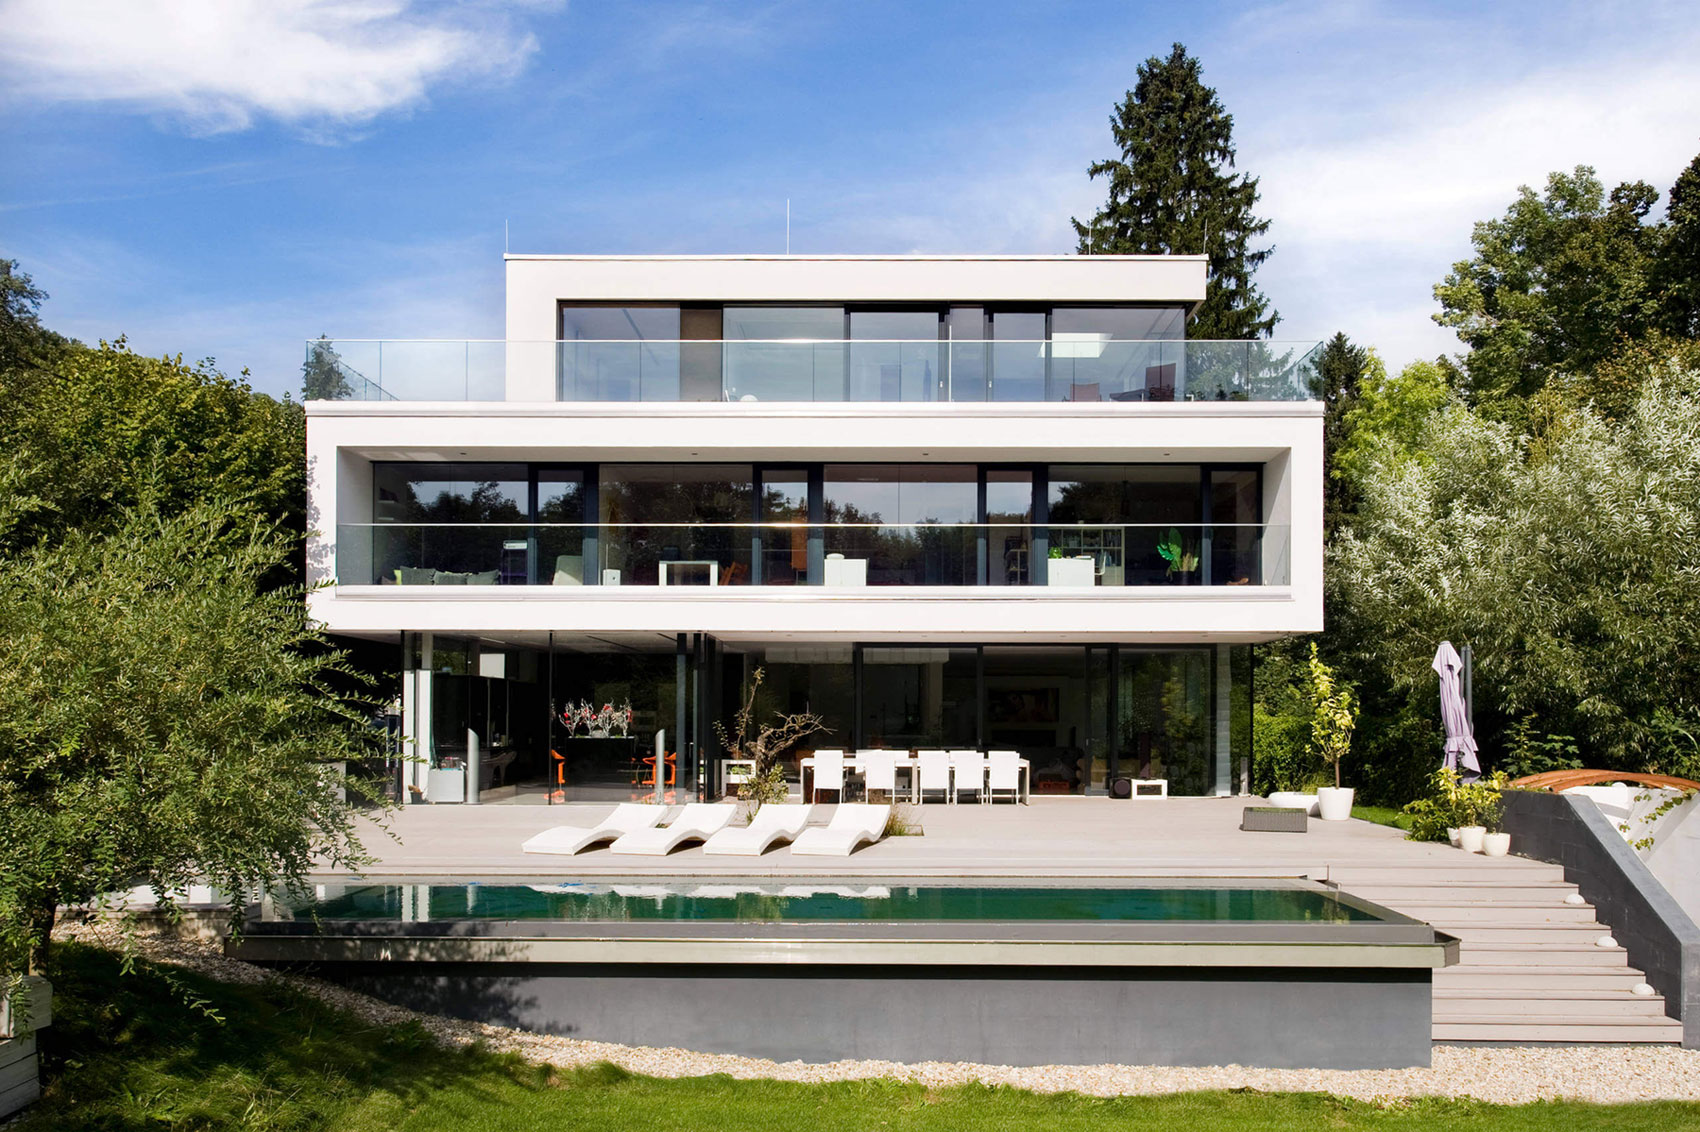 Wunschhaus Architektur Design a Contemporary House in Hinterbrhl